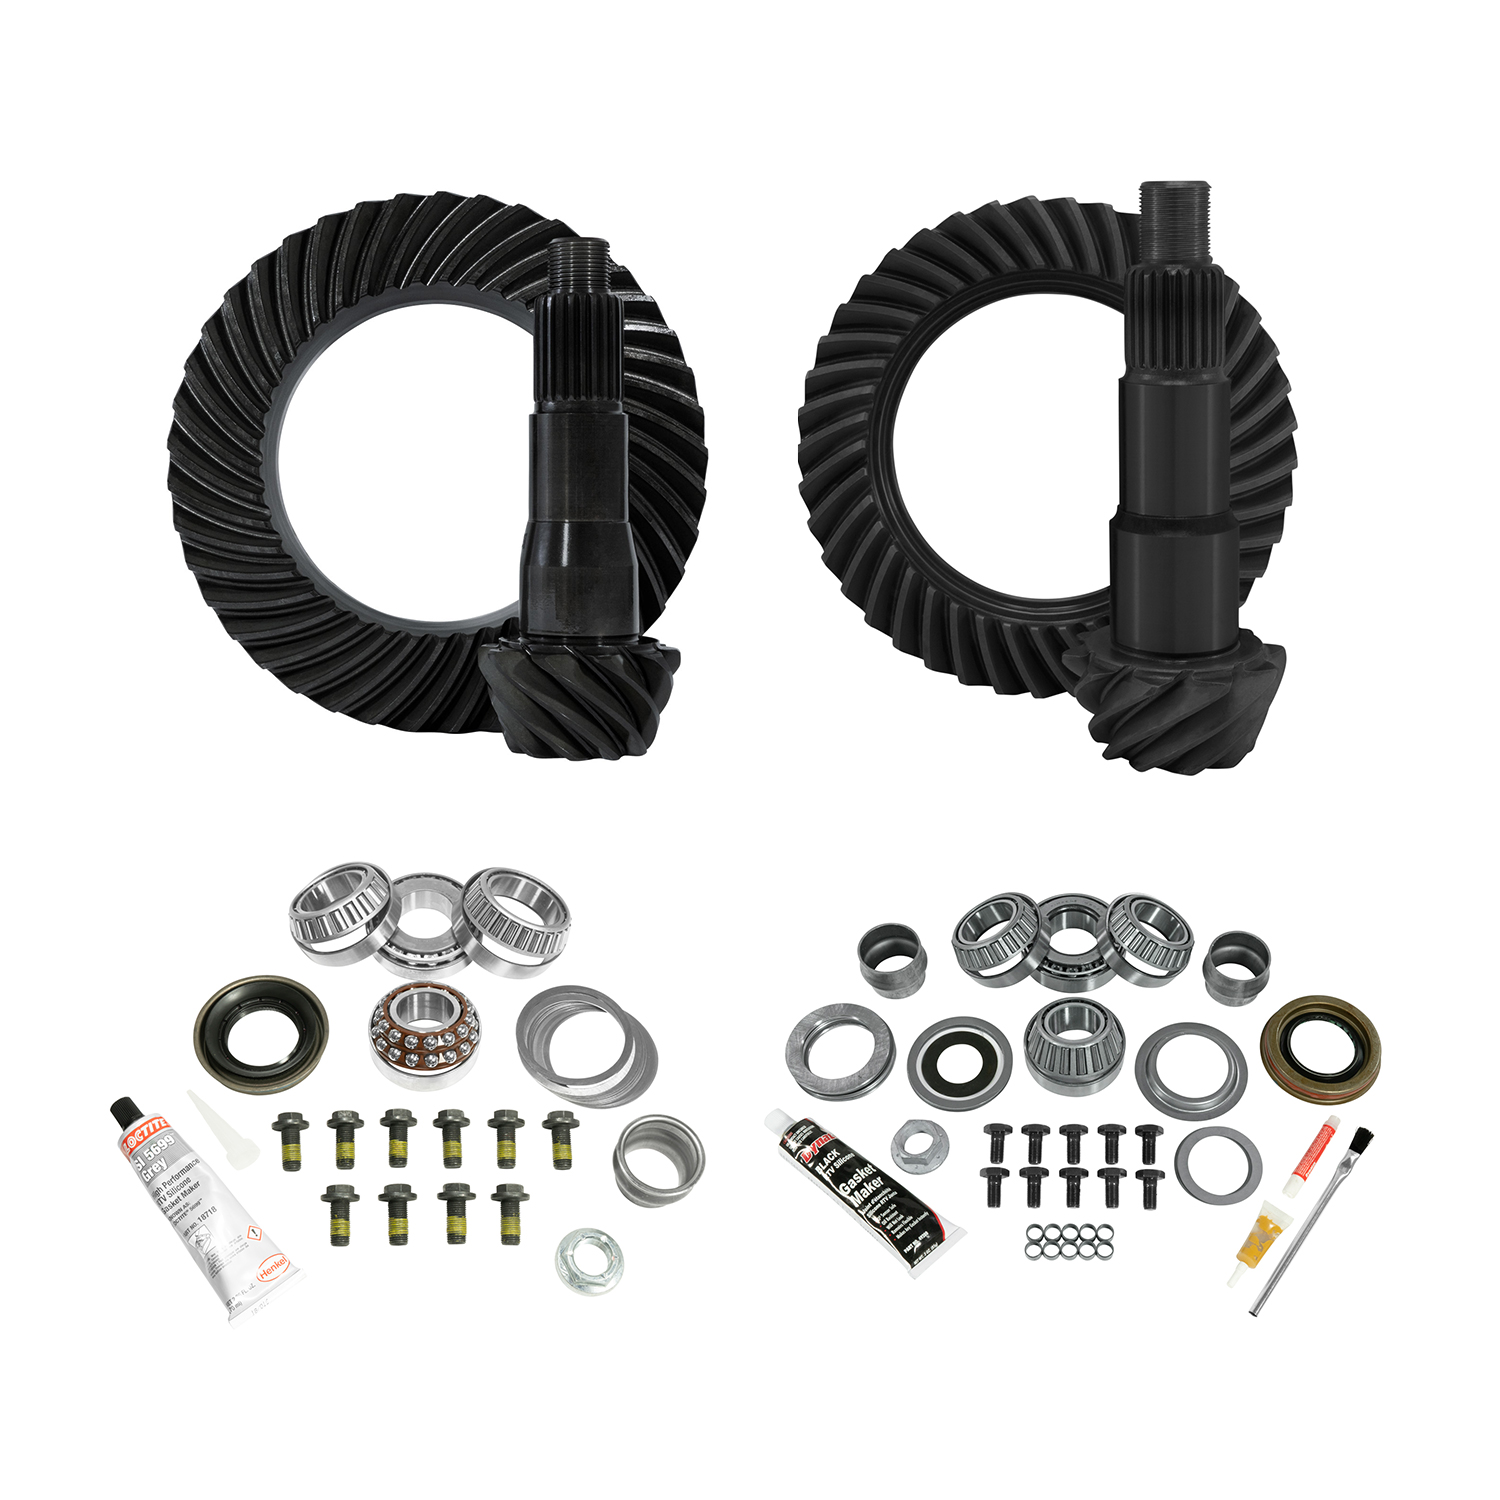 YGK075 - Yukon Complete Gear and Kit Pakage for JL Jeep Non-Rubicon, D35 Rear & D30 Front, 5:13 Gear Ratio